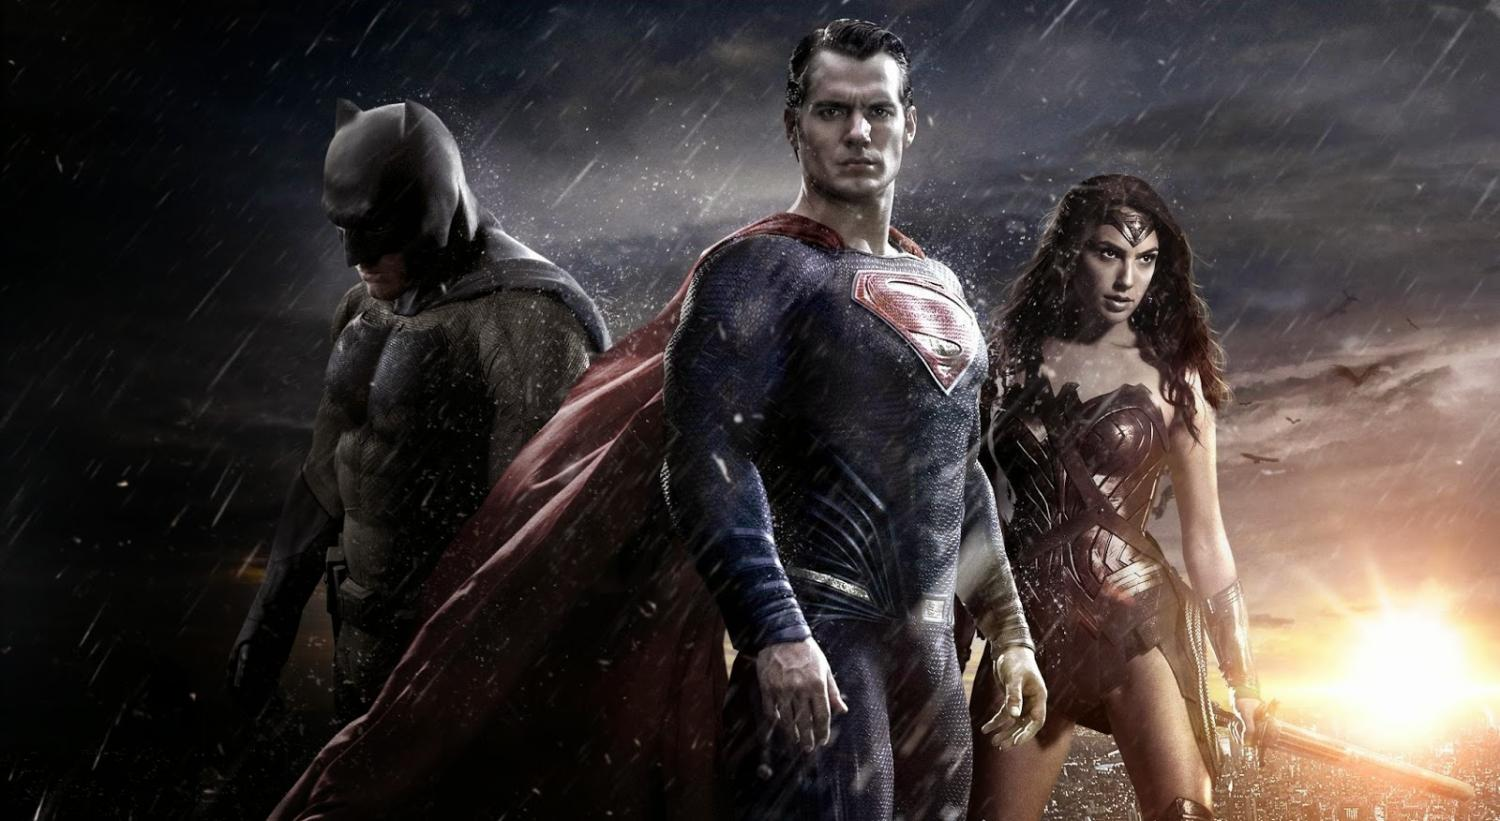 Batman (left), Superman (middle), and Wonder Woman (right), are the three most iconic heroes of DC Comics. All three are set to appear in Justice League, which releases Nov. 17.